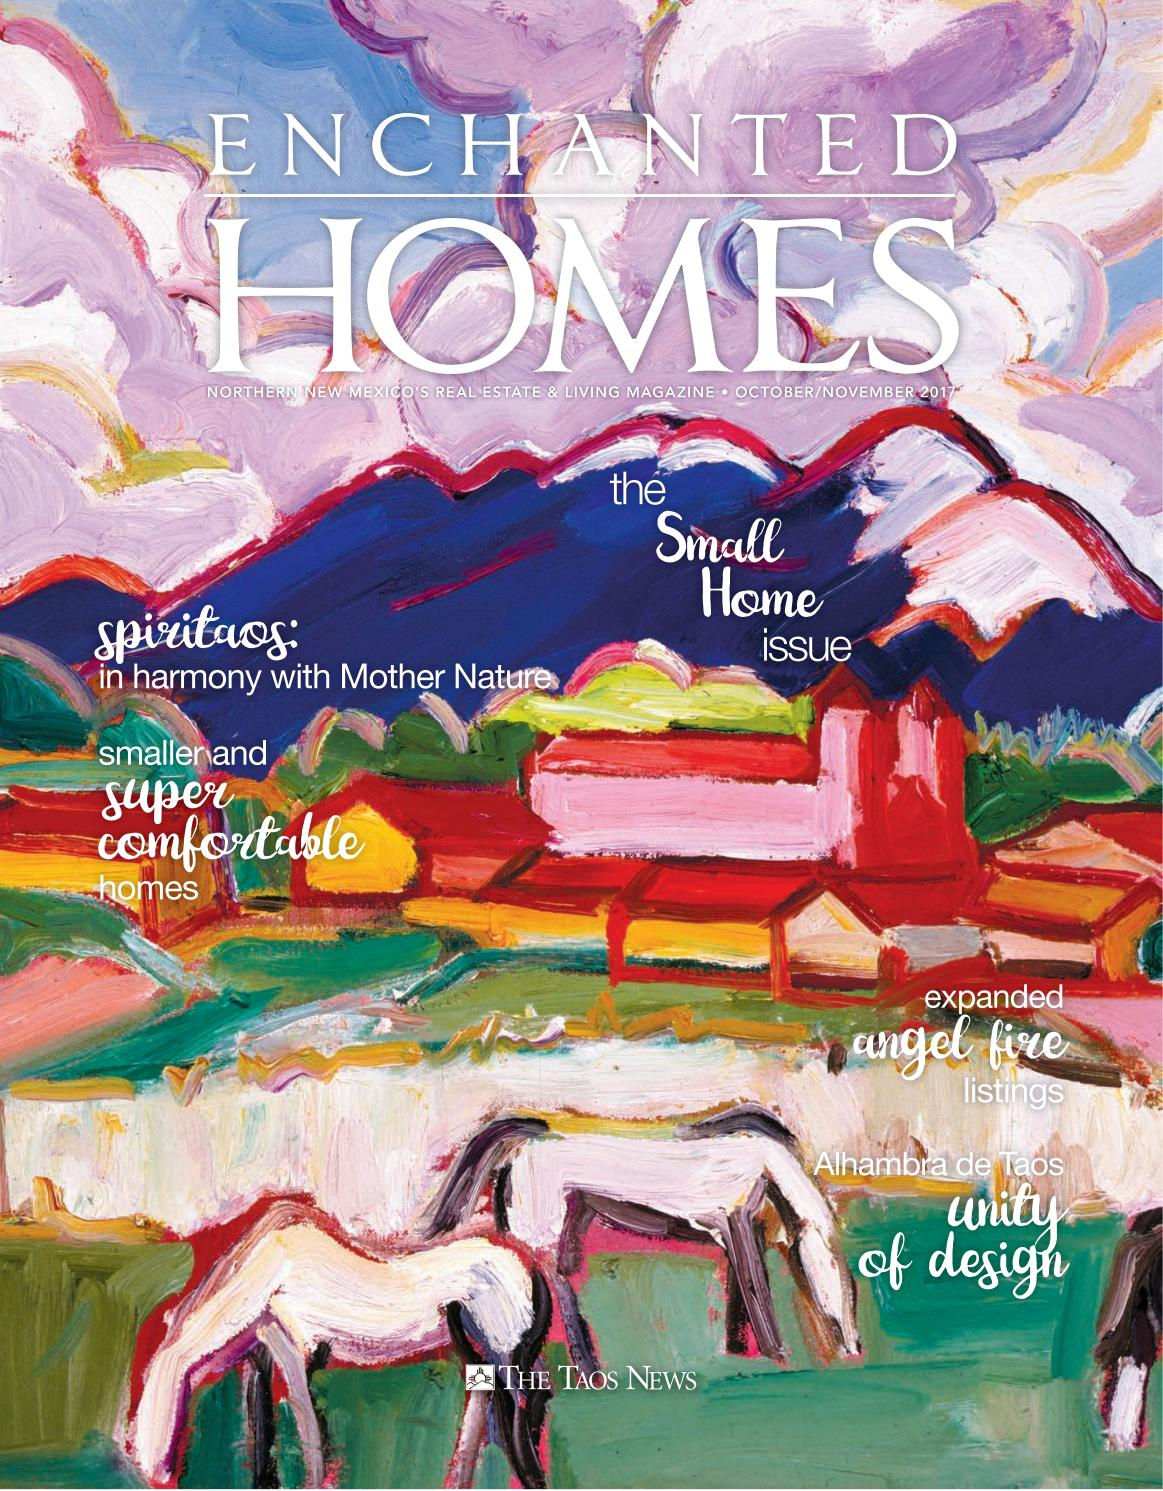 Enchanted Homes Small Homes Issue 2017 By The Taos News Issuu